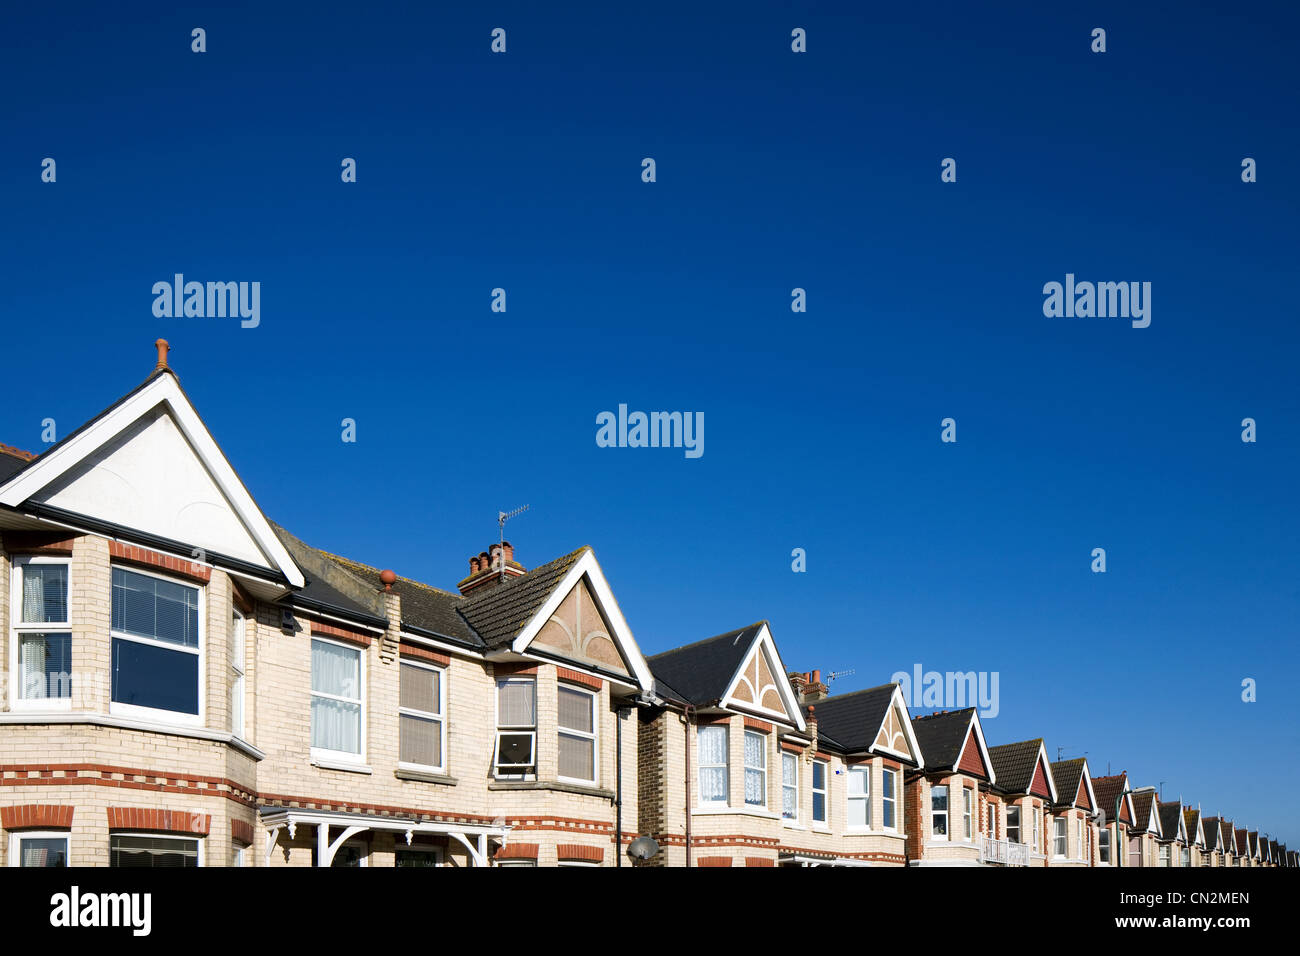 Street of houses and blue sky - Stock Image